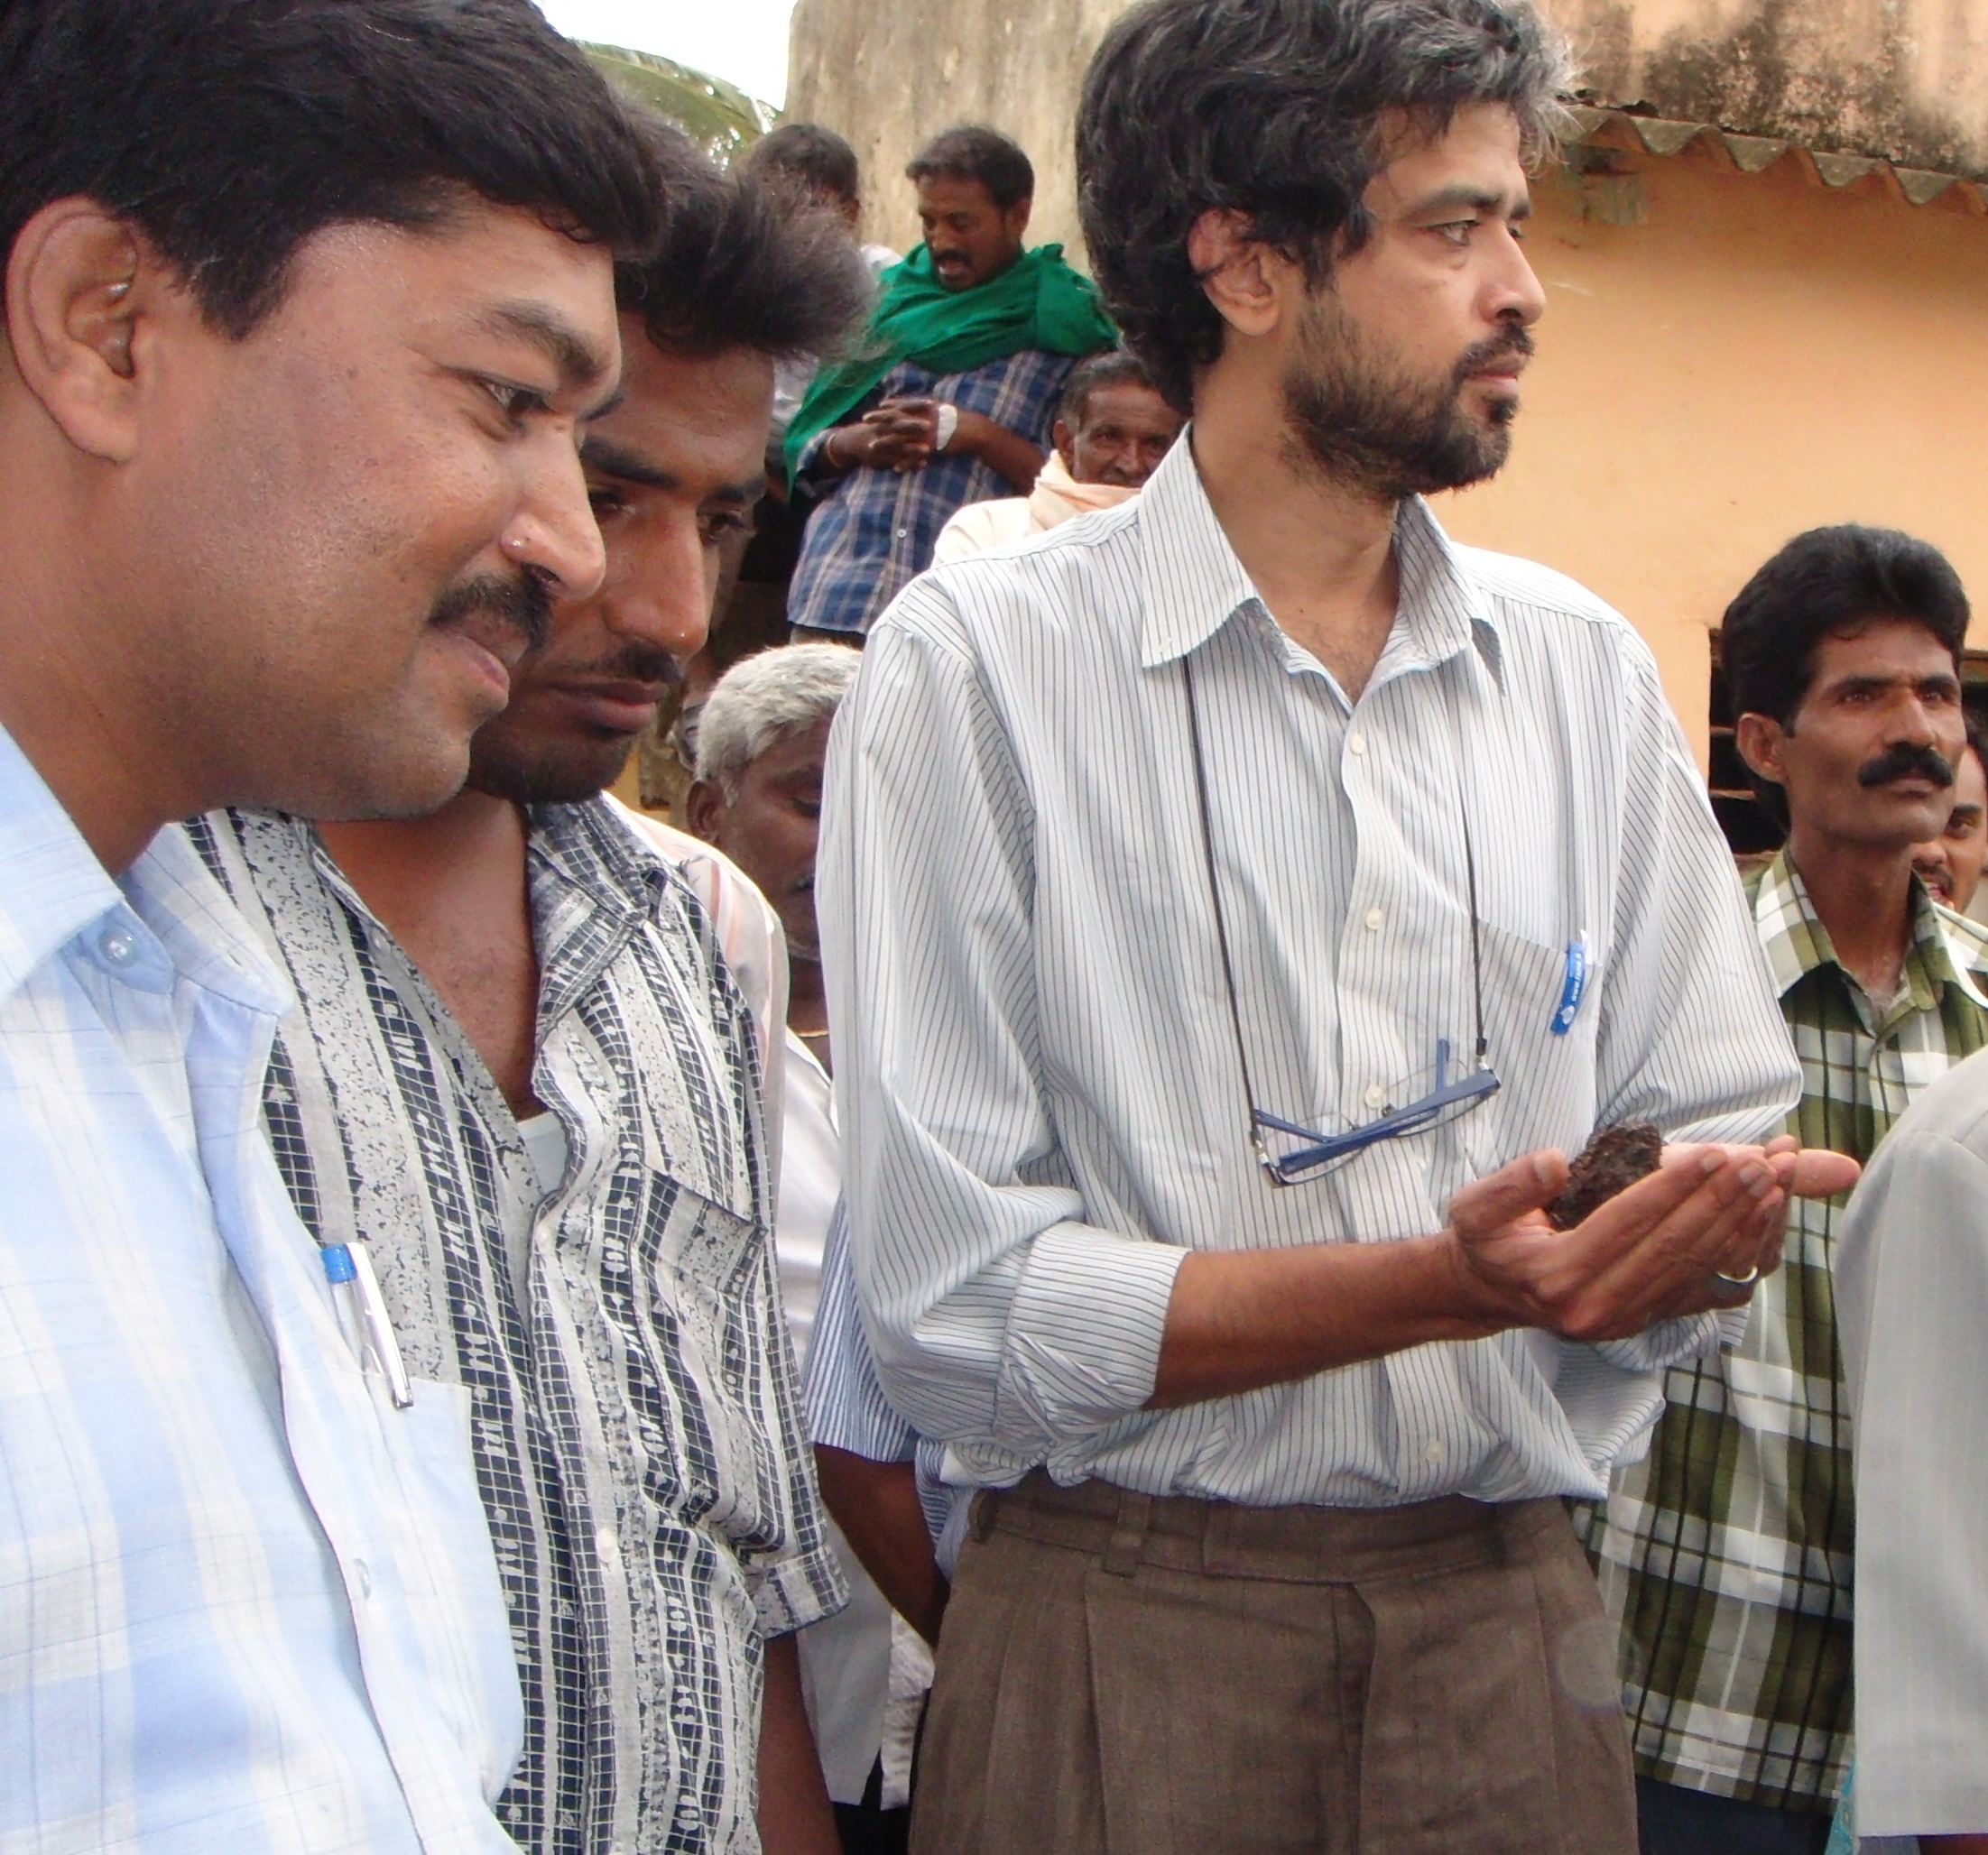 Mr. Vishwanth holding compost (from human waste) in hands